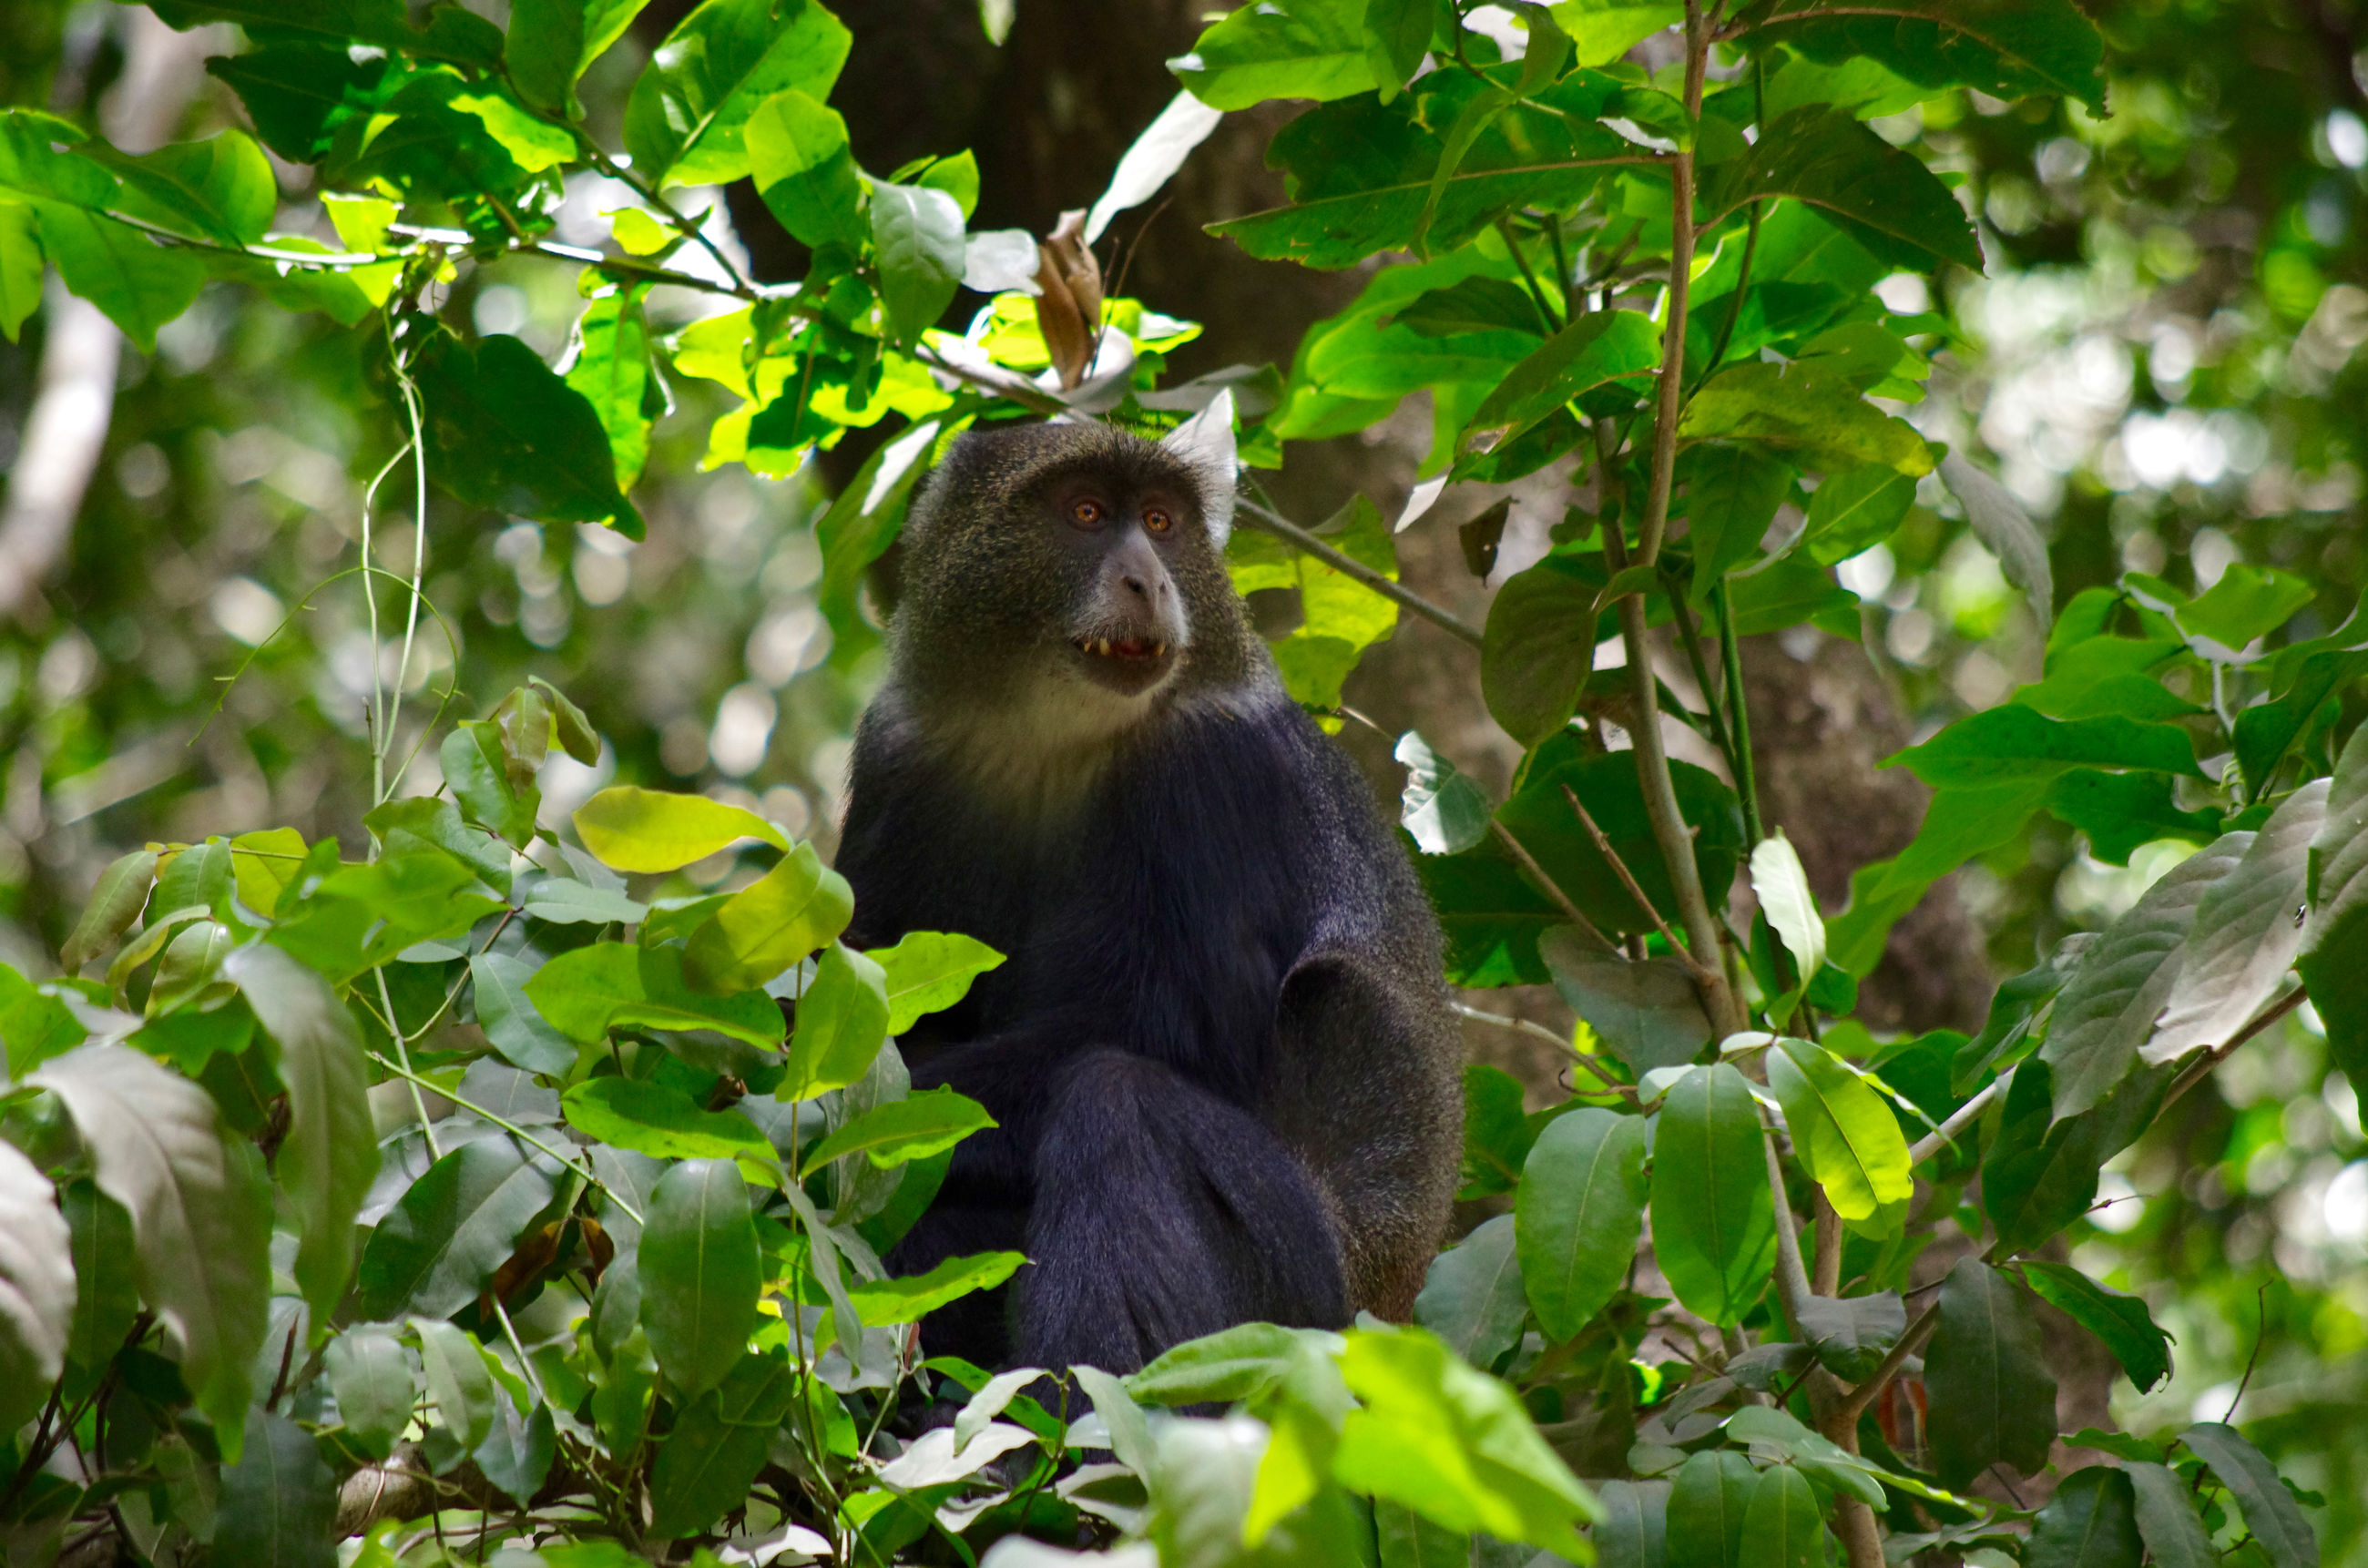 animal themes, animal, animal wildlife, primate, mammal, plant part, monkey, leaf, animals in the wild, one animal, vertebrate, plant, tree, nature, green color, no people, day, sitting, forest, land, outdoors